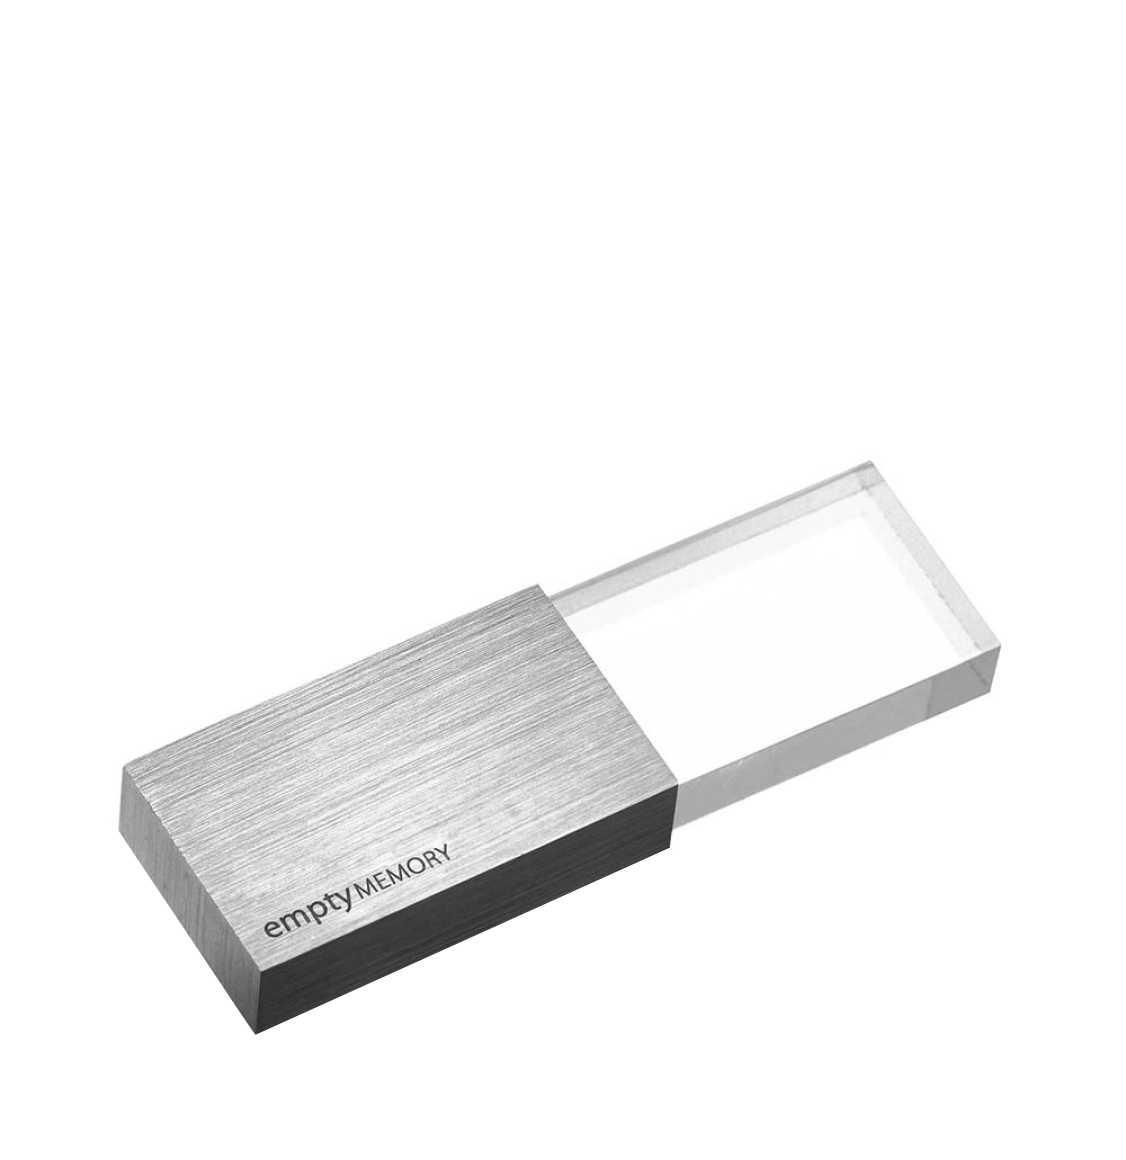 Beyond Object USB Memory Transparency Stainless Steel